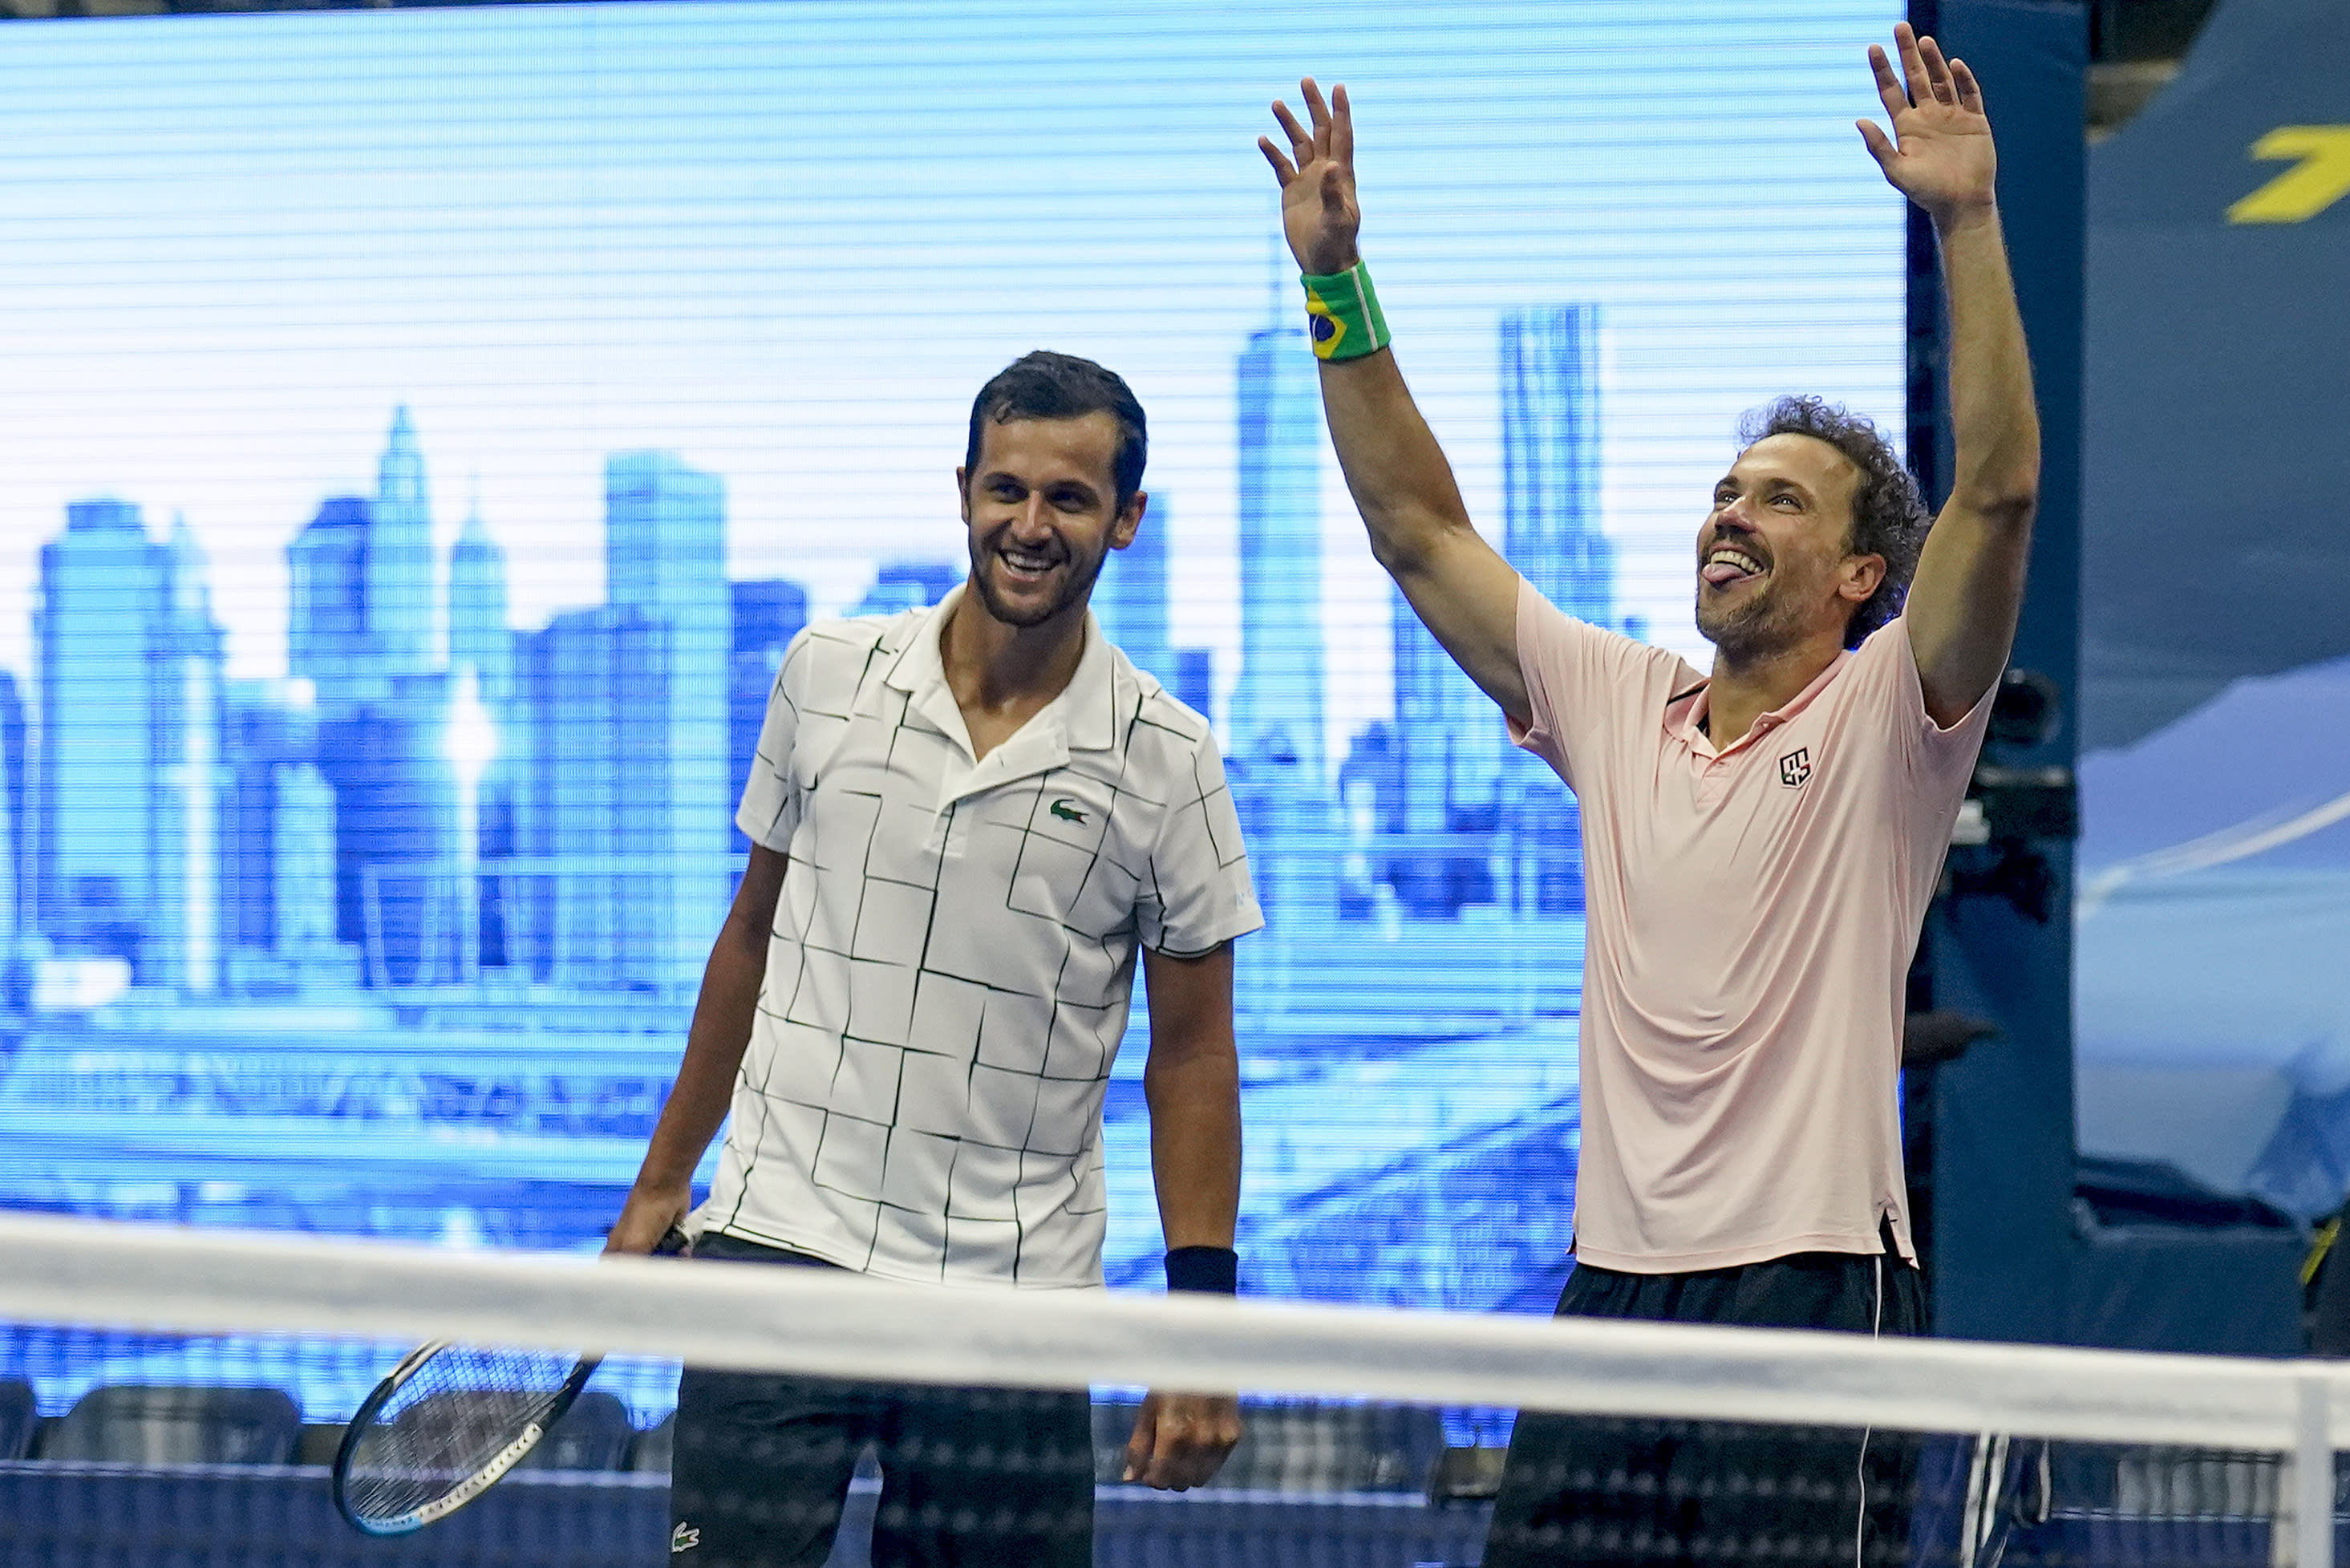 Mate Pavic, of Croatia, left, and Bruno Soares, of Brazil, celebrate winning the men's doubles final against Wesley Koolhof, of the Netherlands, and Nikola Mektic, of Croatia, during the US Open tennis championships, Thursday, Sept. 10, 2020, in New York. (AP Photo/Seth Wenig)